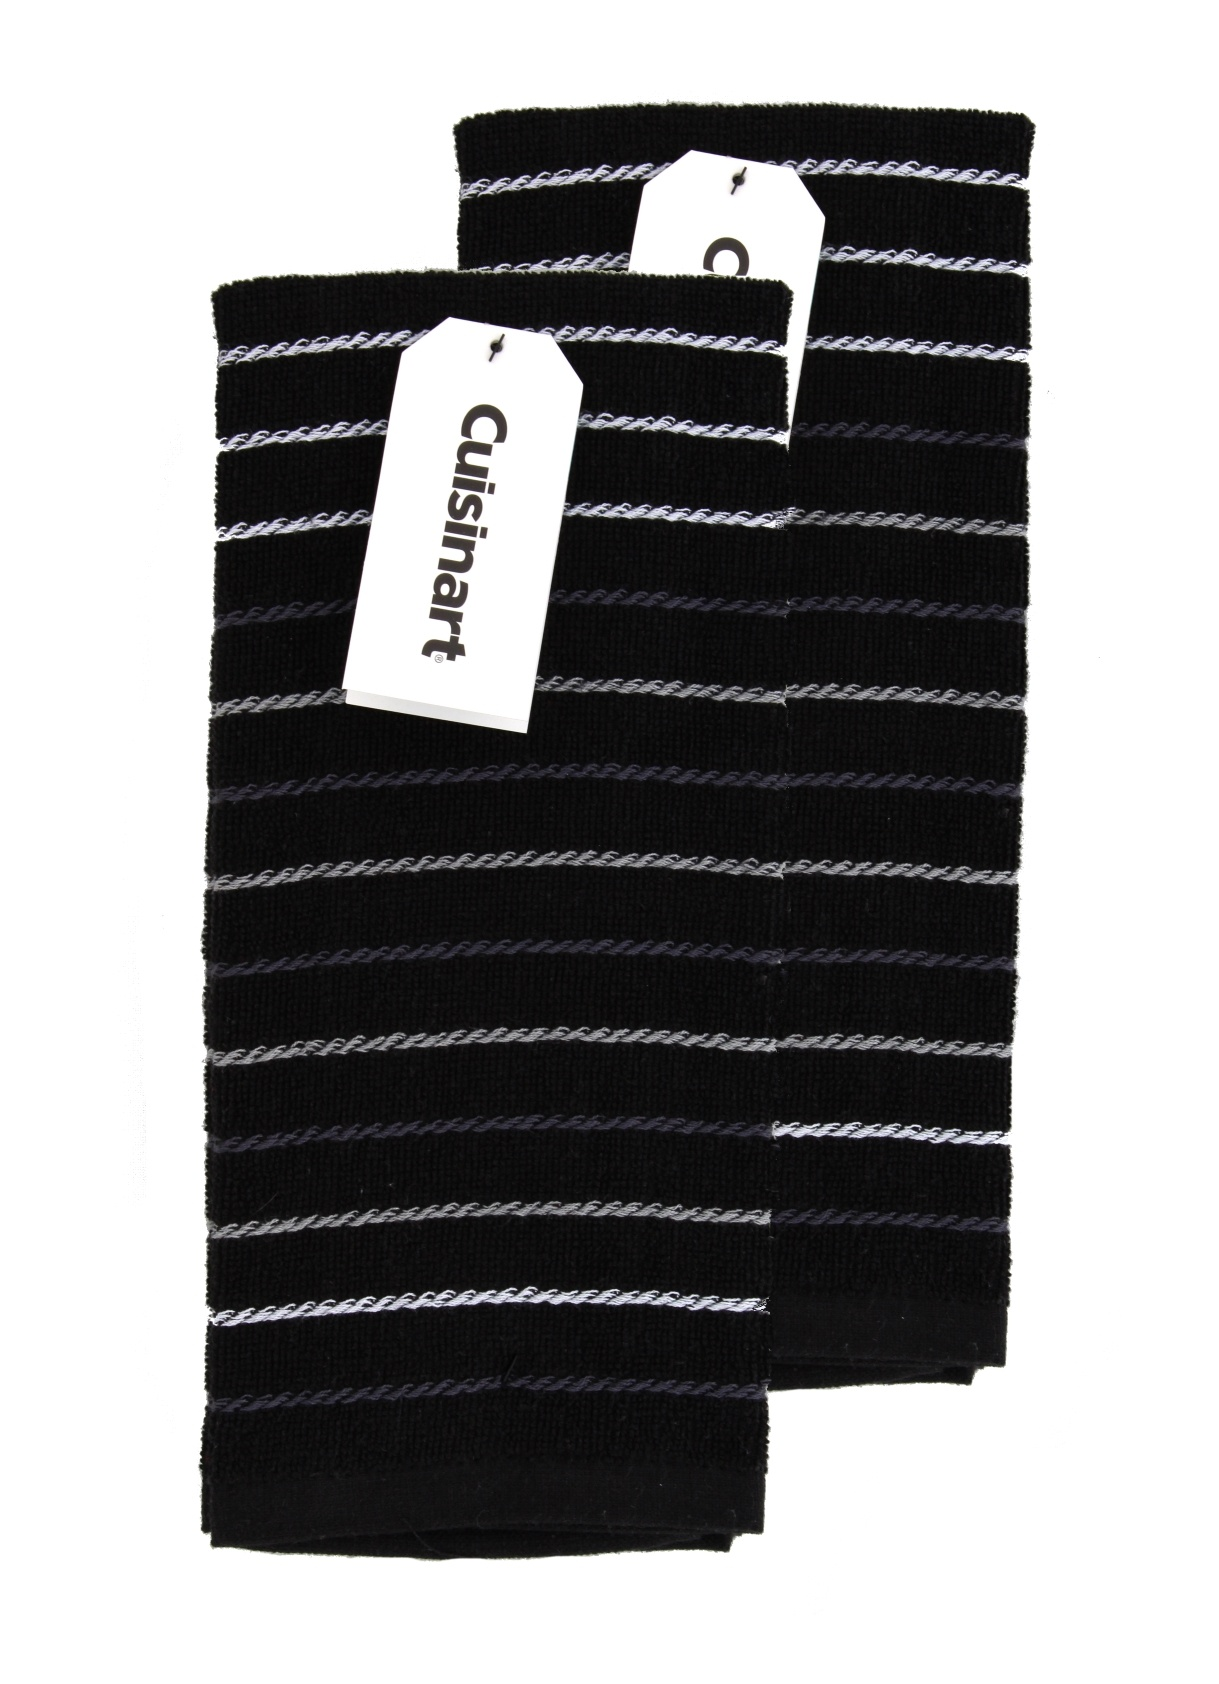 Cuisinart 100% Cotton Terry Hand and Dish Kitchen Towels Absorbent, Lightweight, Soft &... by Cuisinart